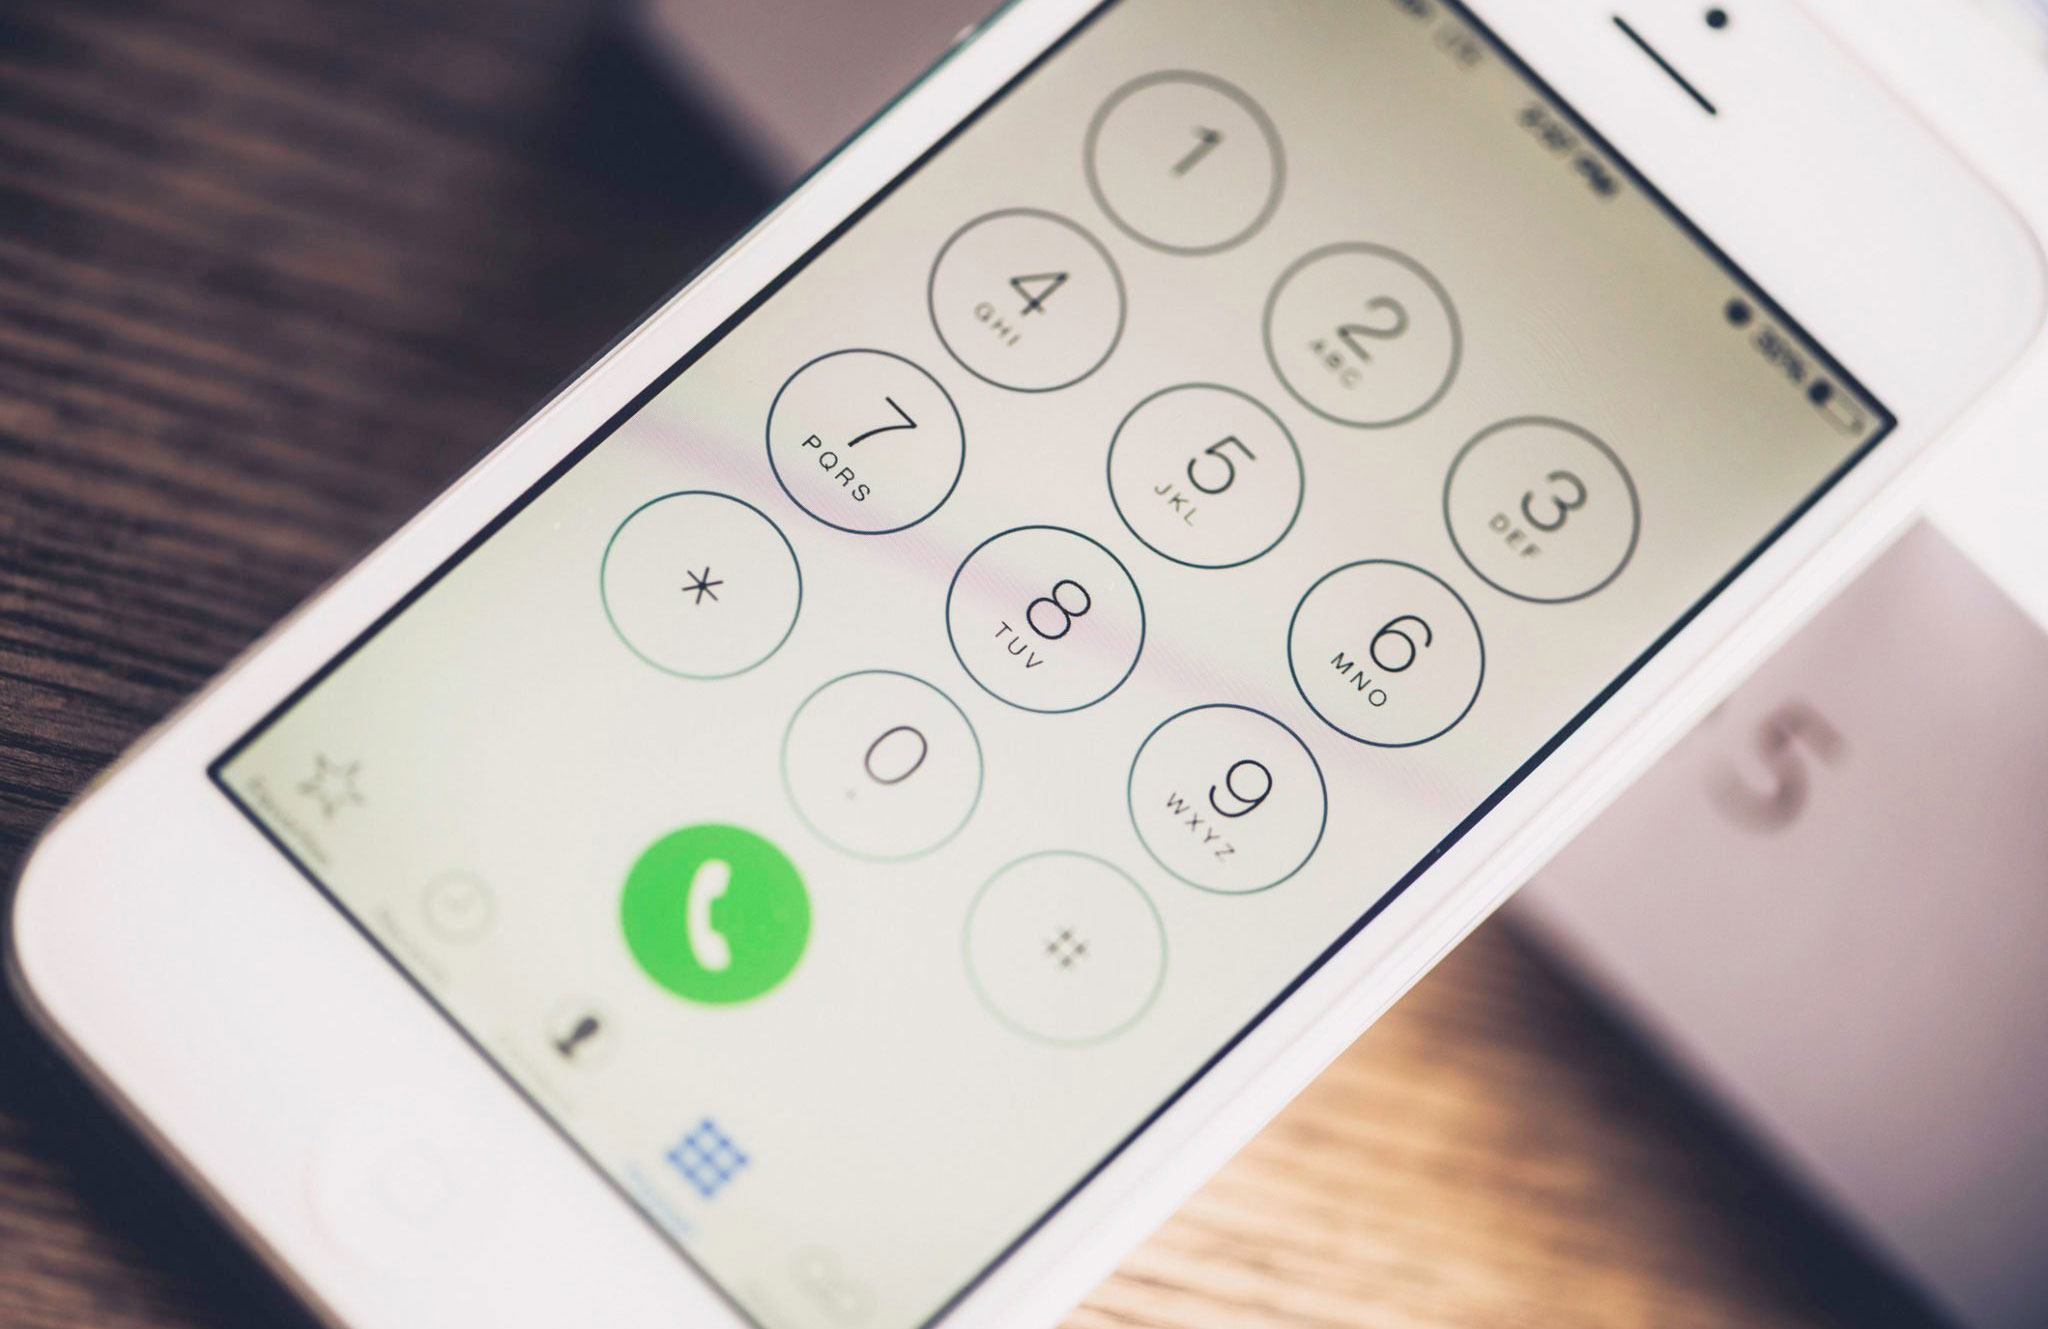 Your number can be used in many malicious ways